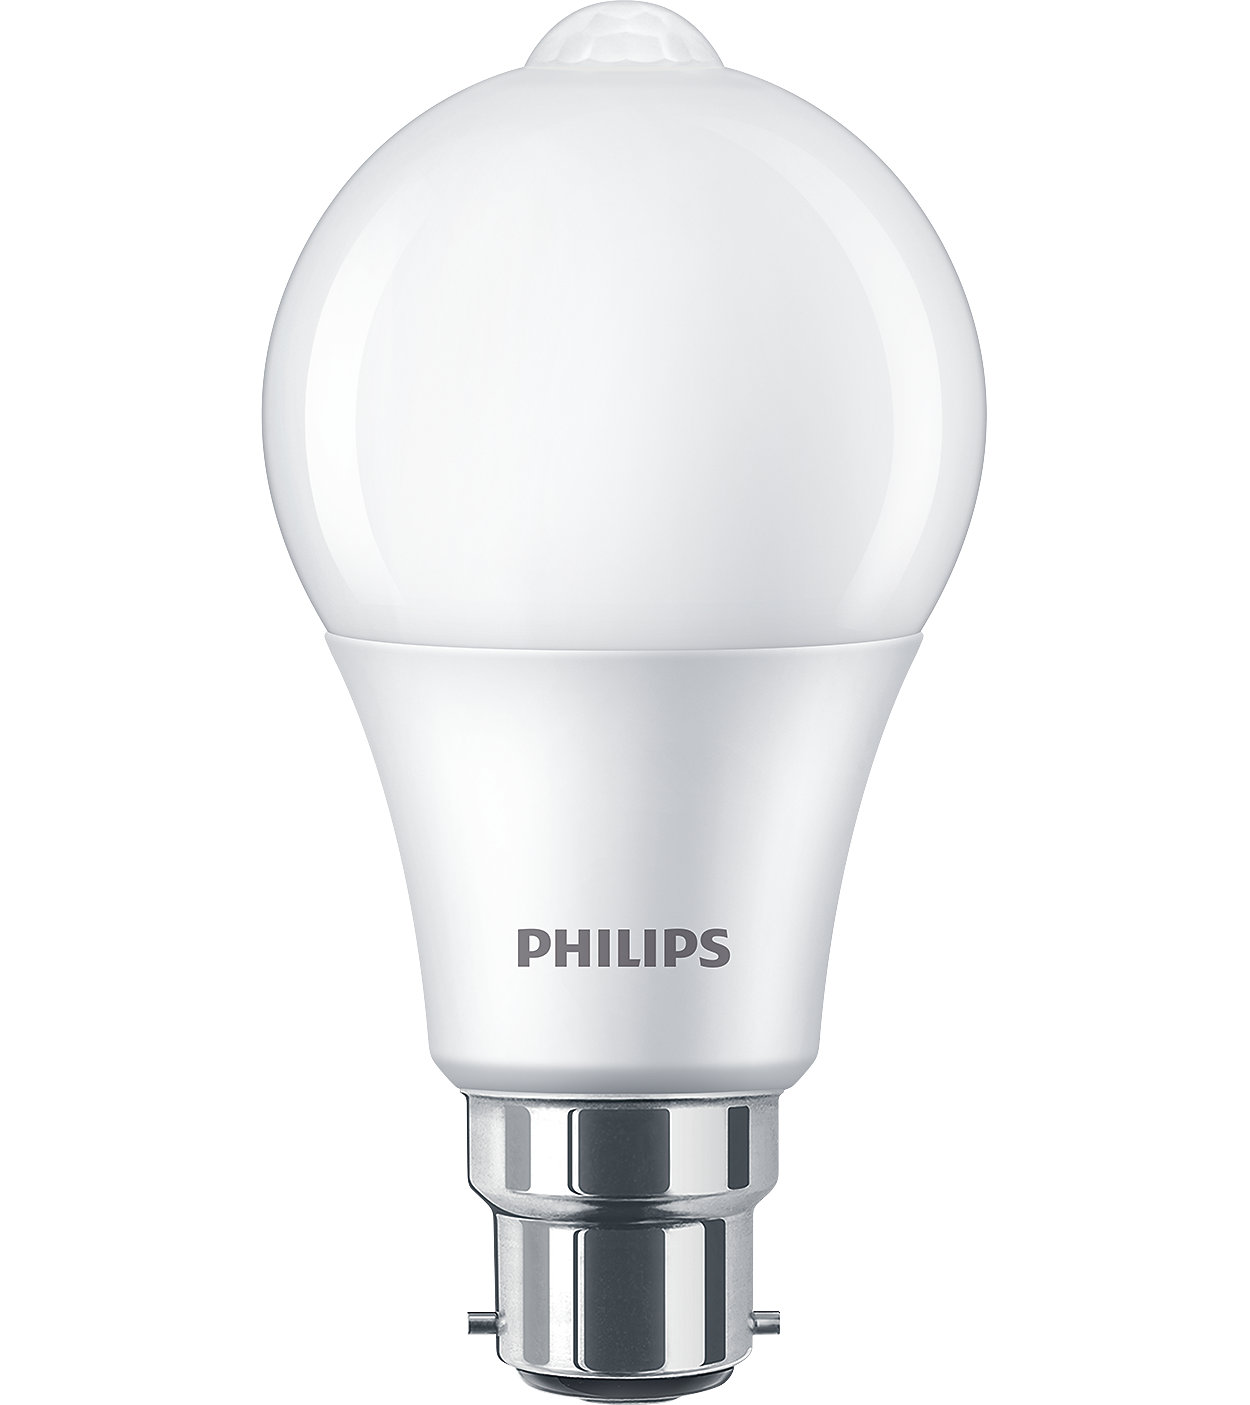 State-of-the-art LED light bulb for the home